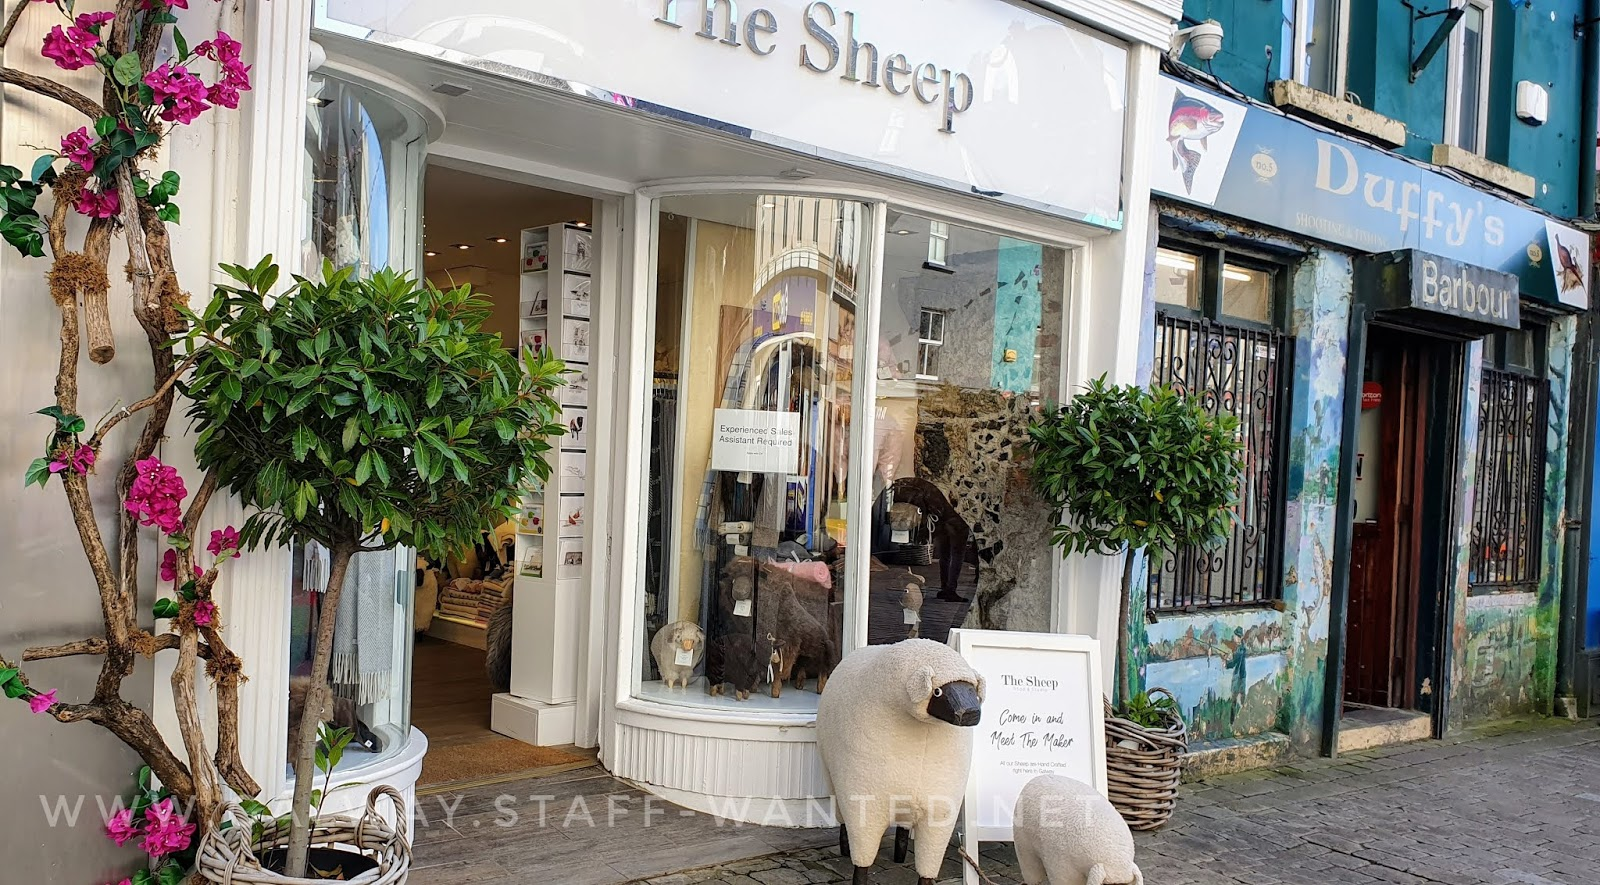 Shopfront of The Sheep, and also Duffys hunting and fishing shop, suppliers of Barbour jackets